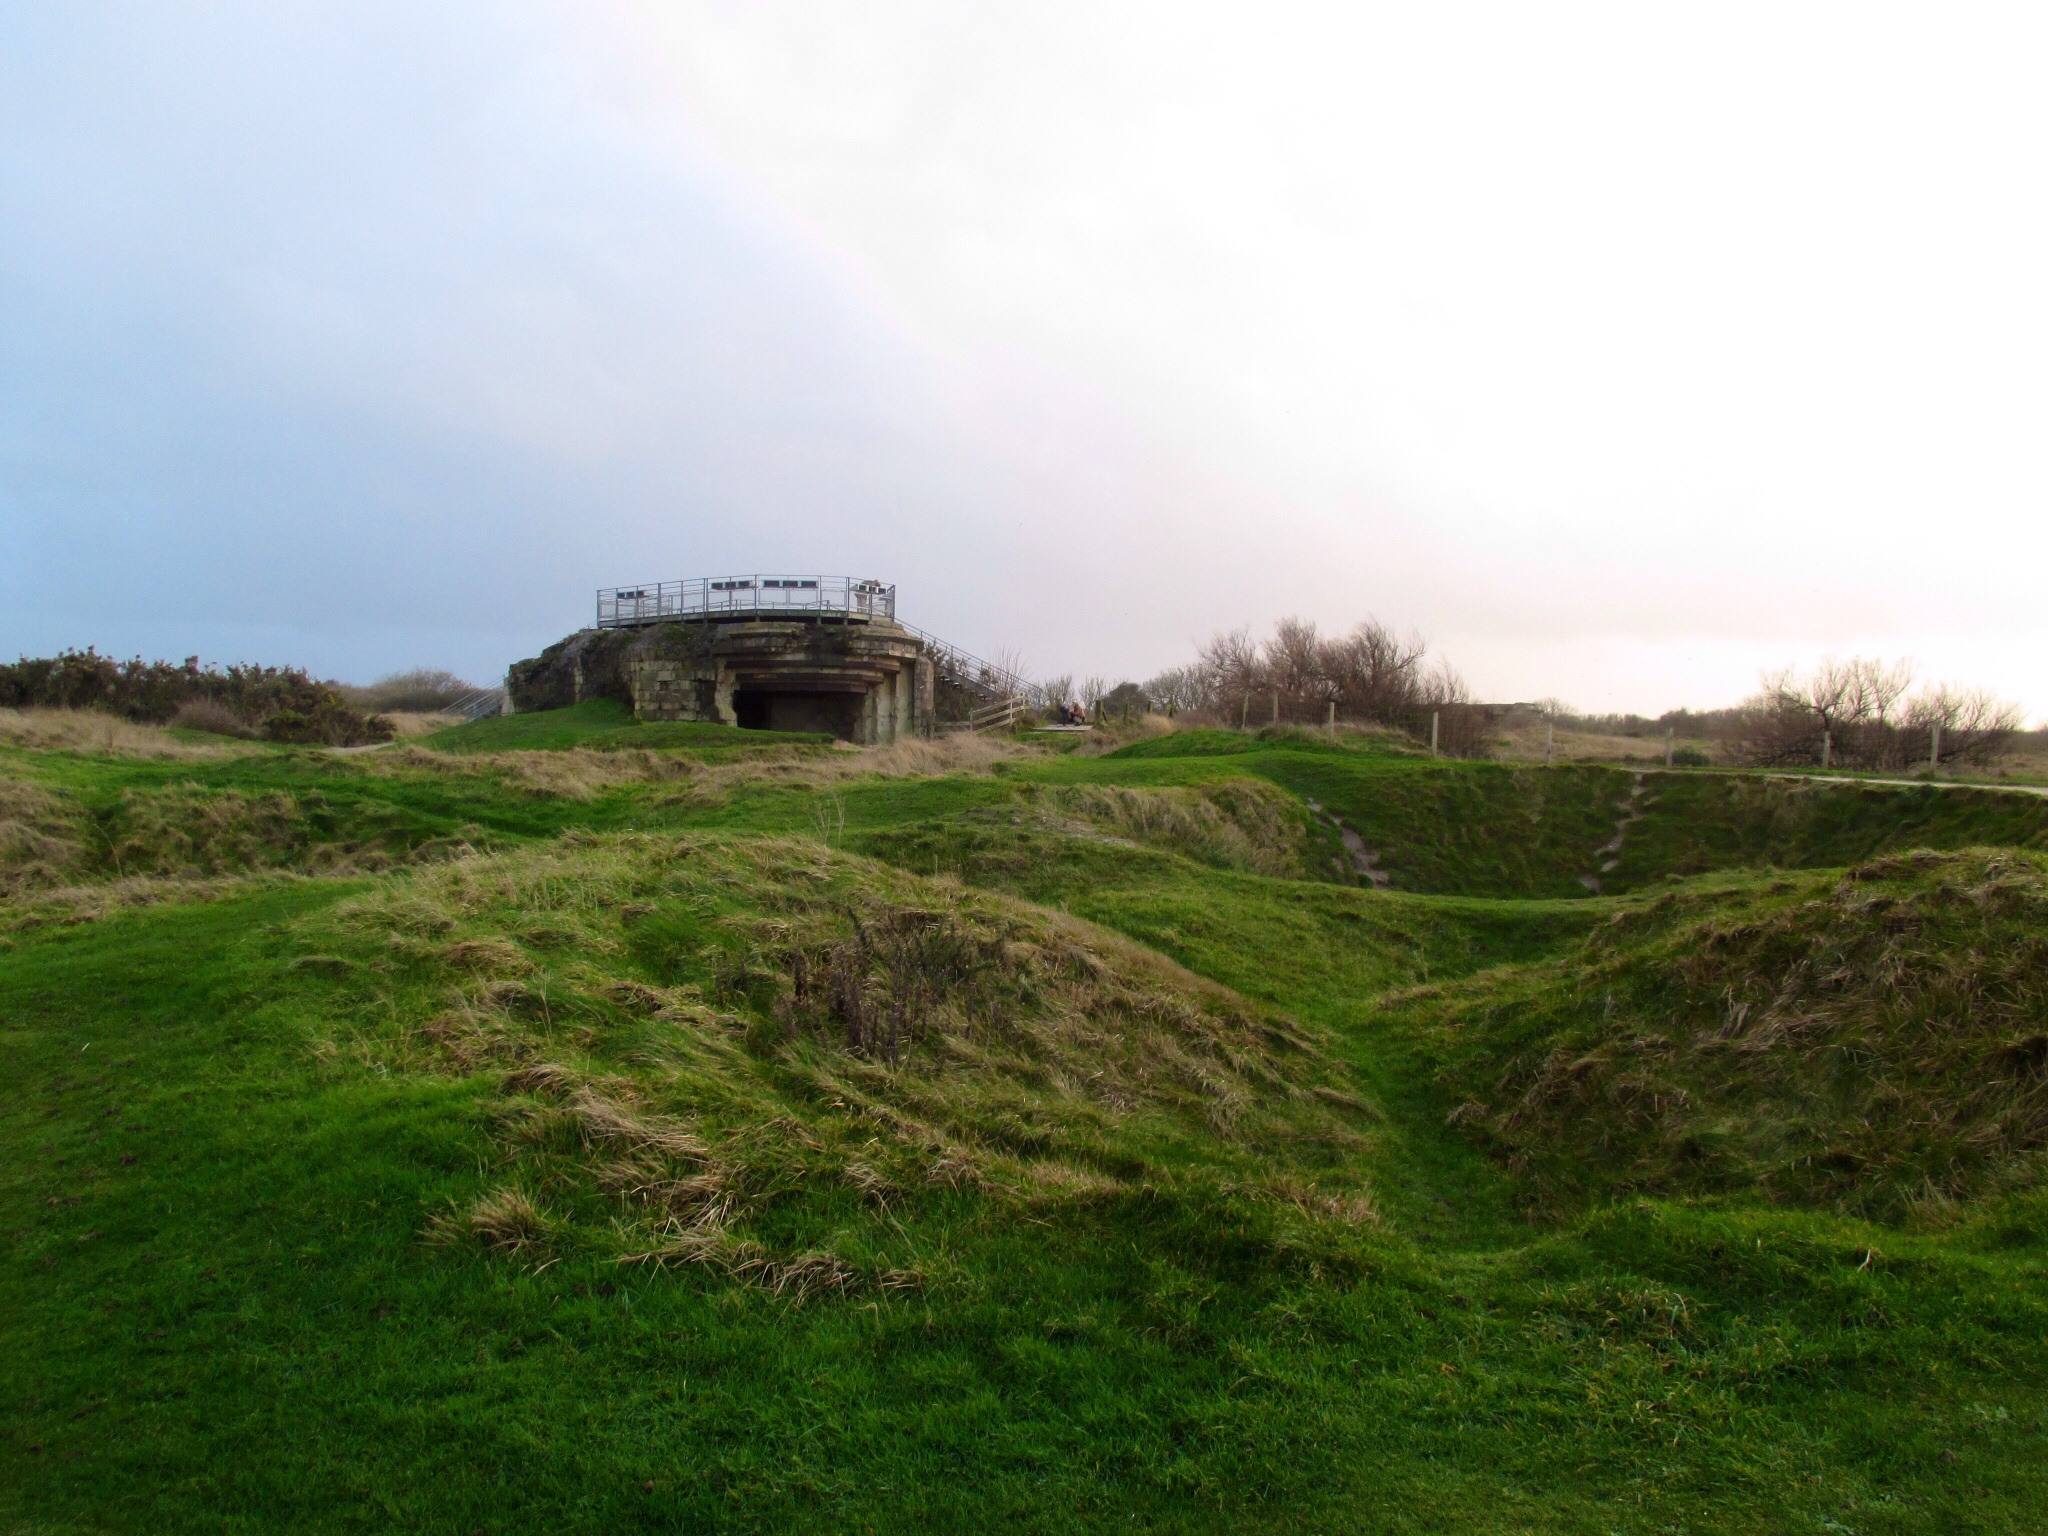 Bomb craters and gun emplacement at Pointe-du-Hoc